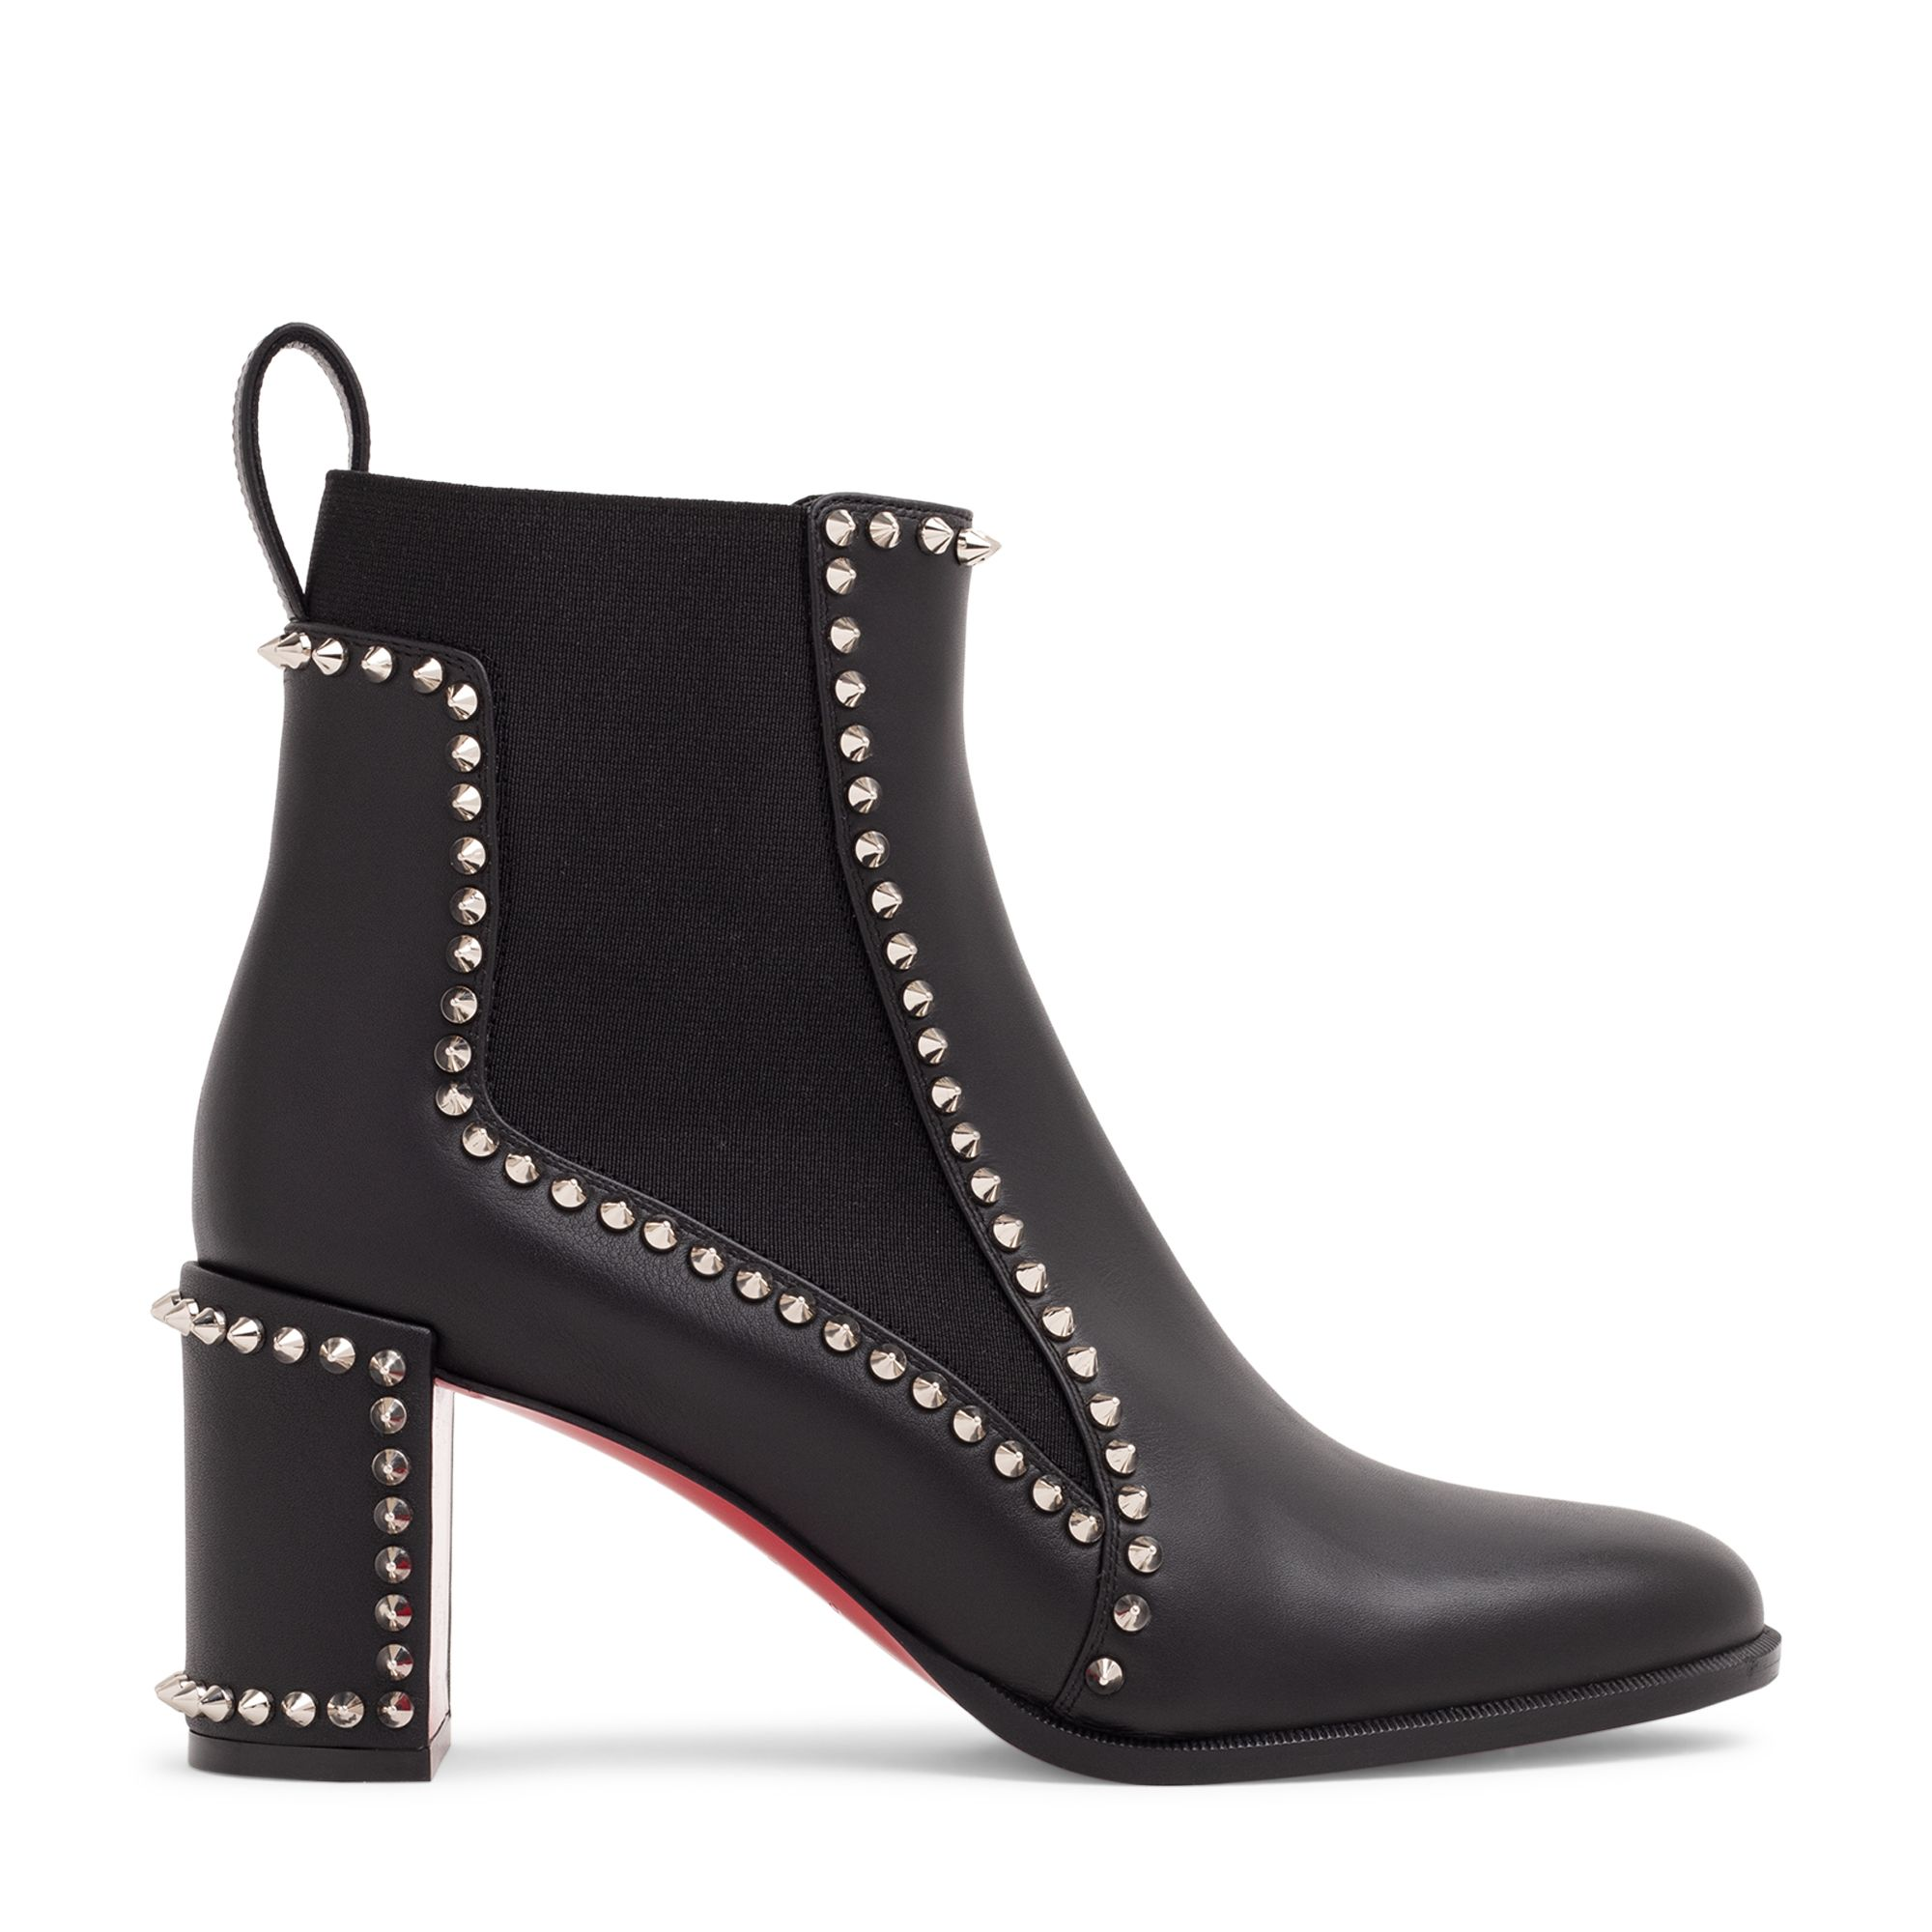 Out Line Spike 70 boots